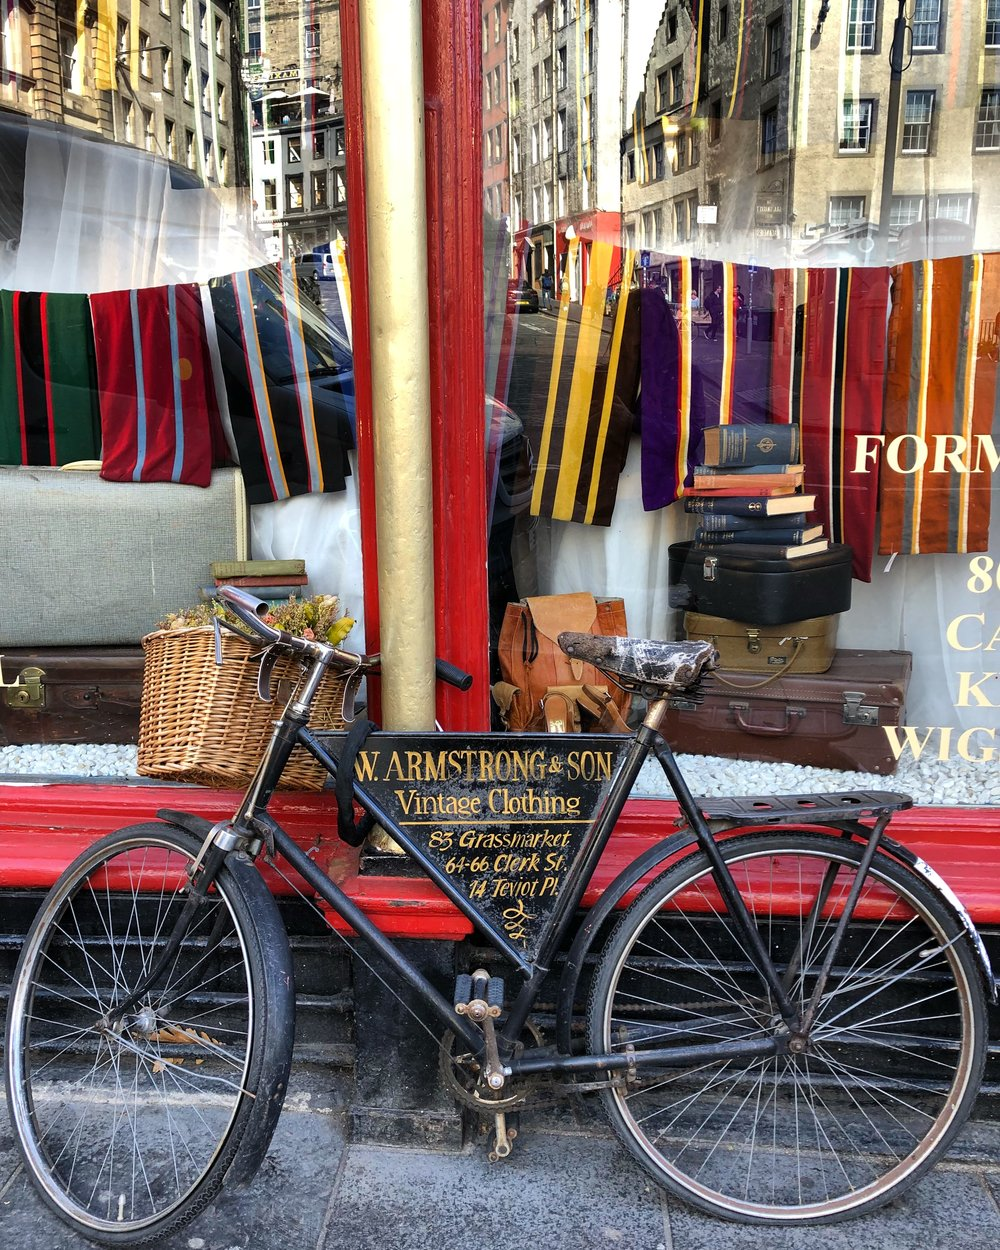 W.Armstrong & Son Vintage Store